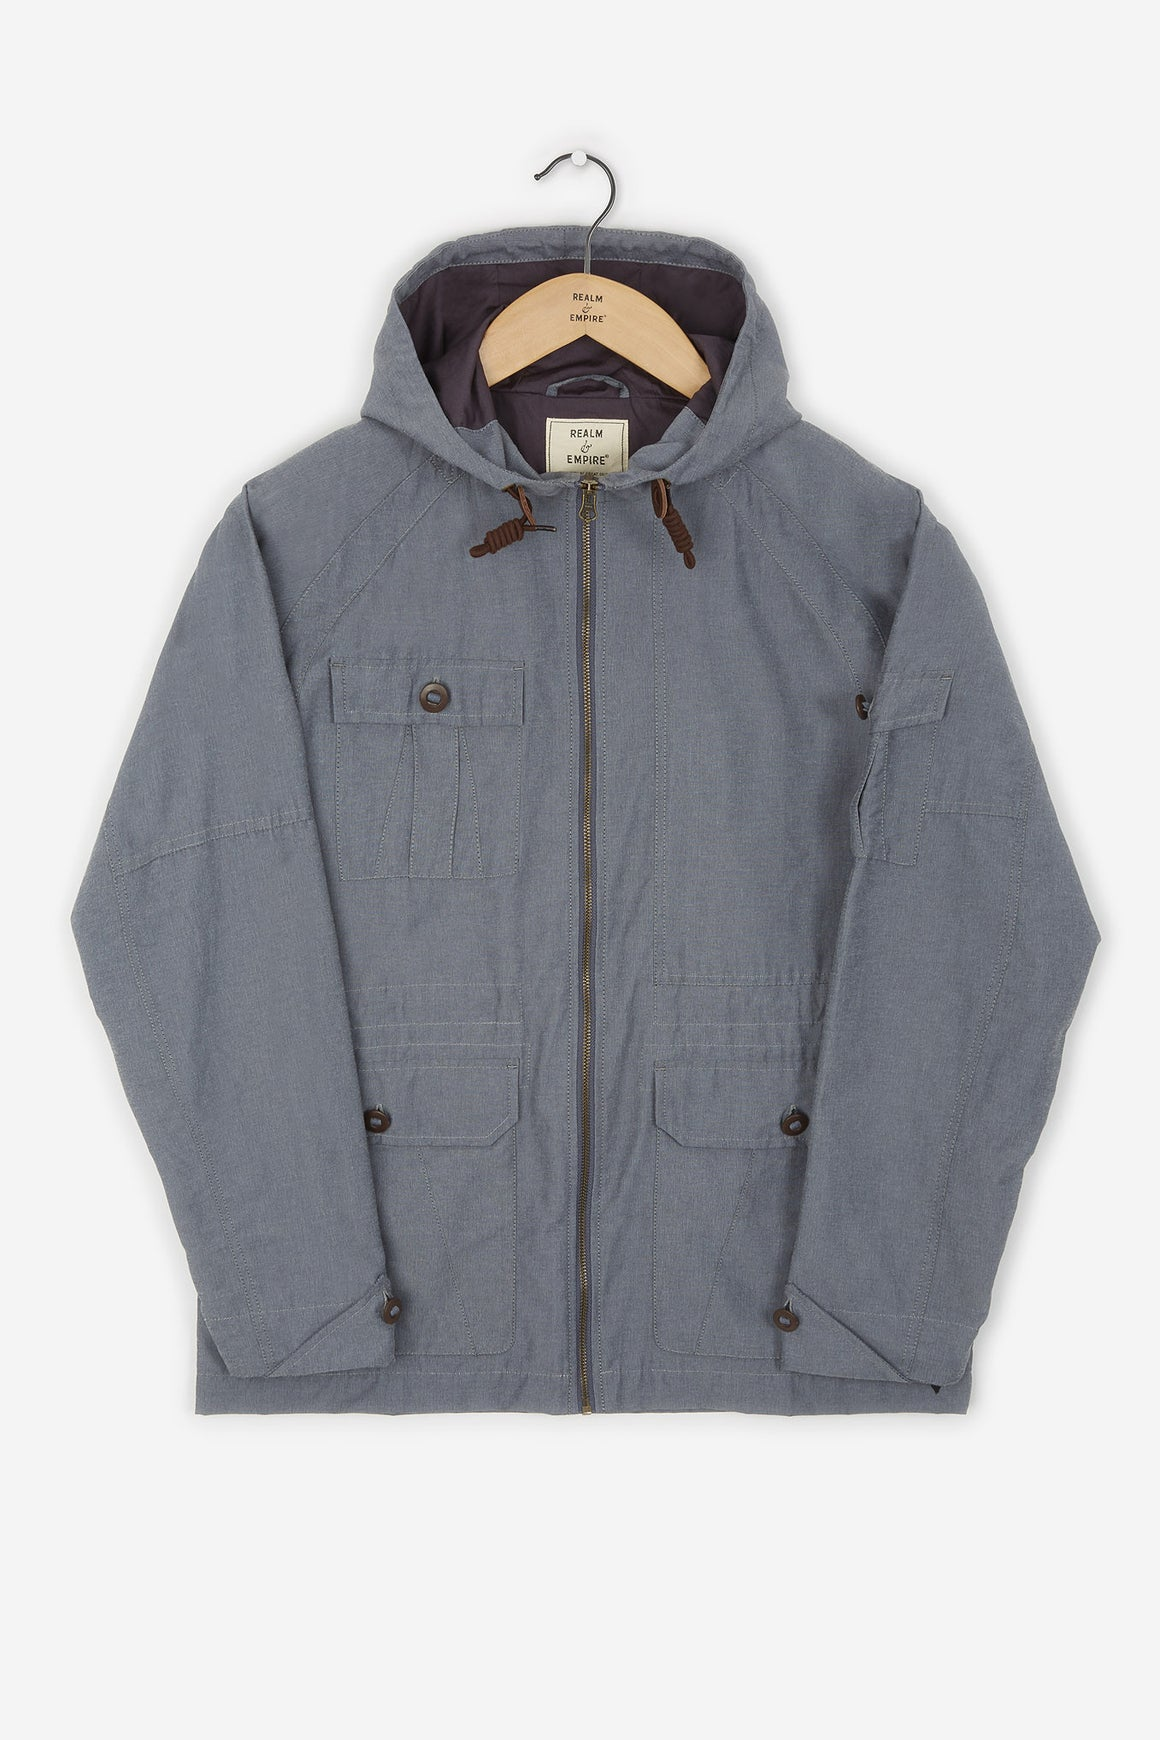 Realm & Empire Long Range Patrol Jacket | Navy